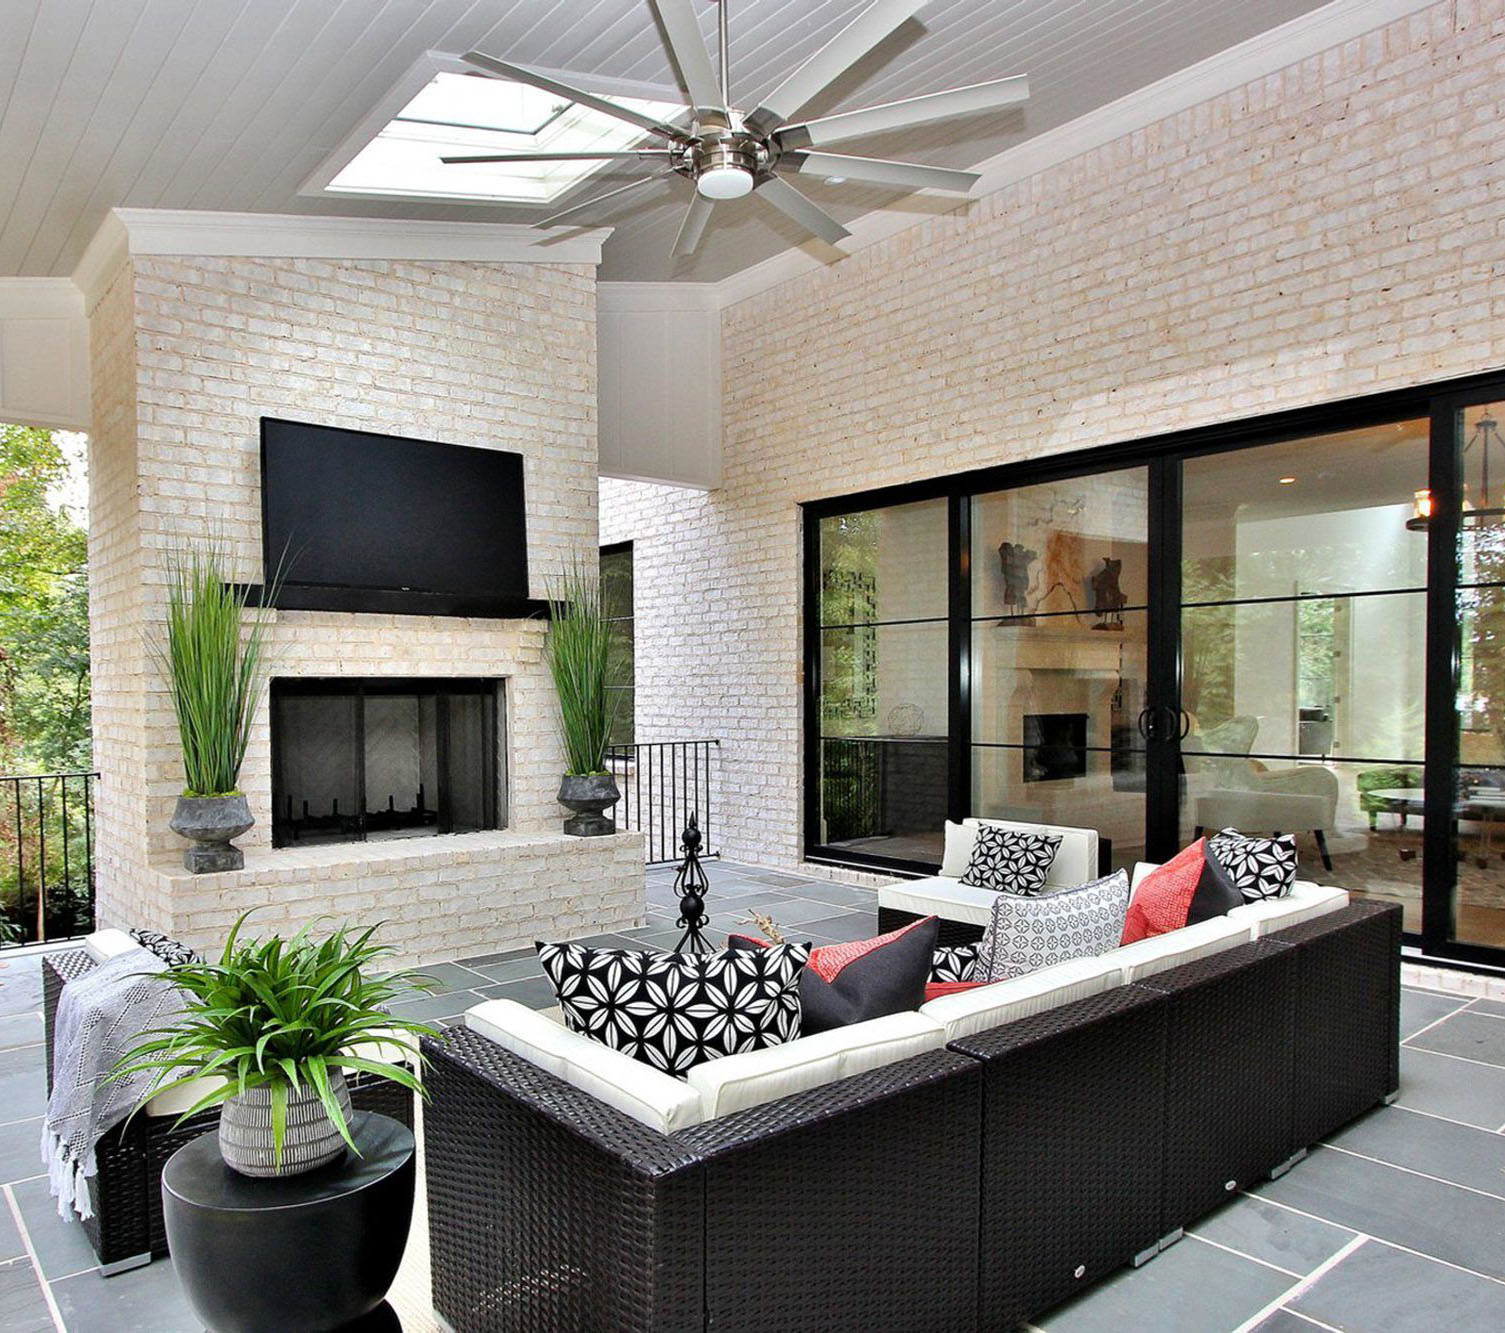 Outdoor red brick fireplace that's been whitewashed with a technique called German Schmear. fireplace design ideas.